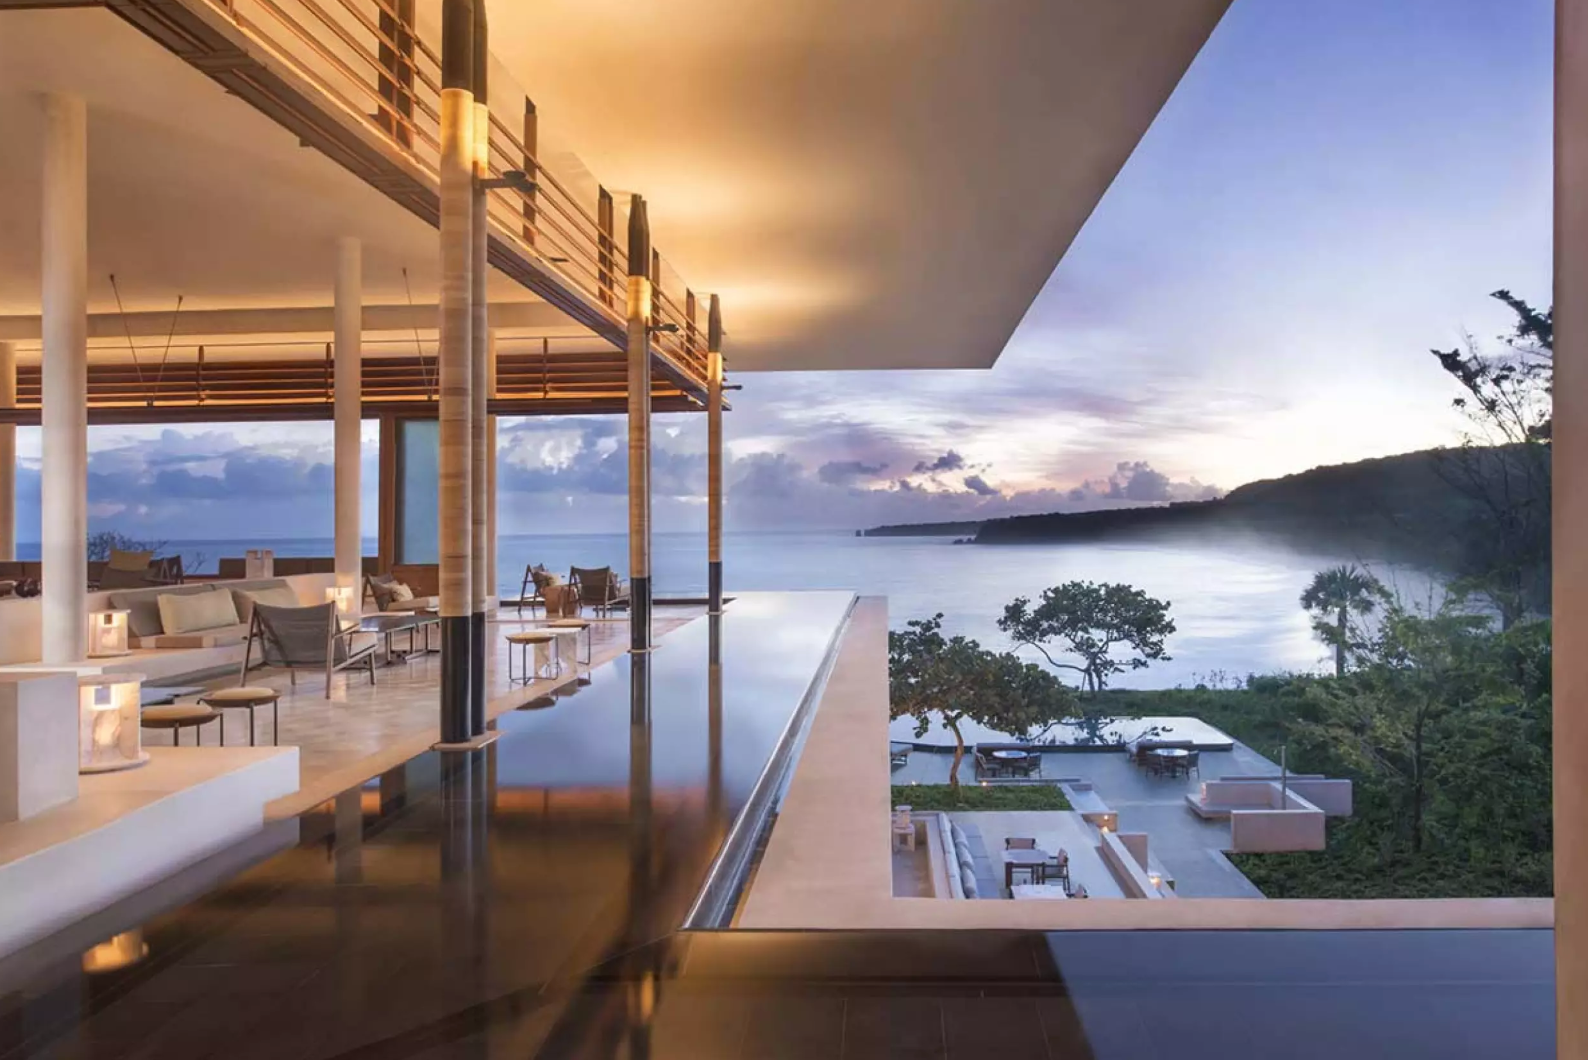 The Best Luxury Resorts in the Caribbean